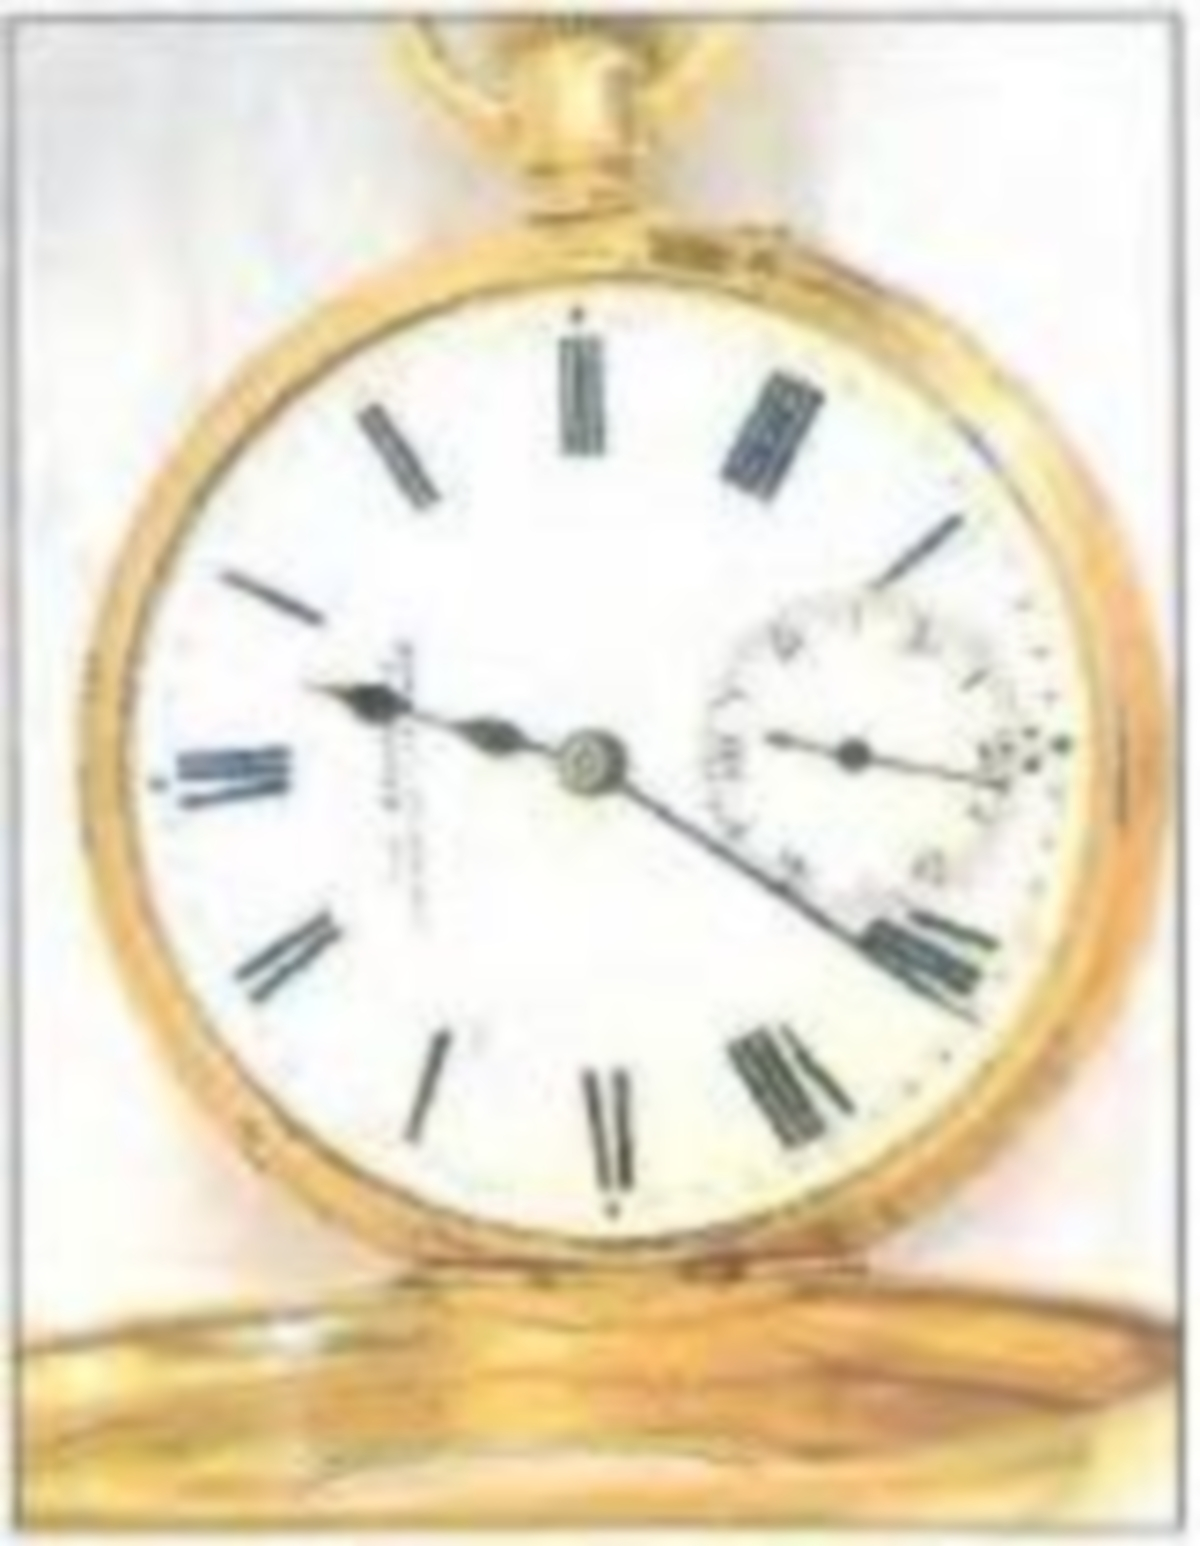 Half hunter pocket watch stolen in burglary